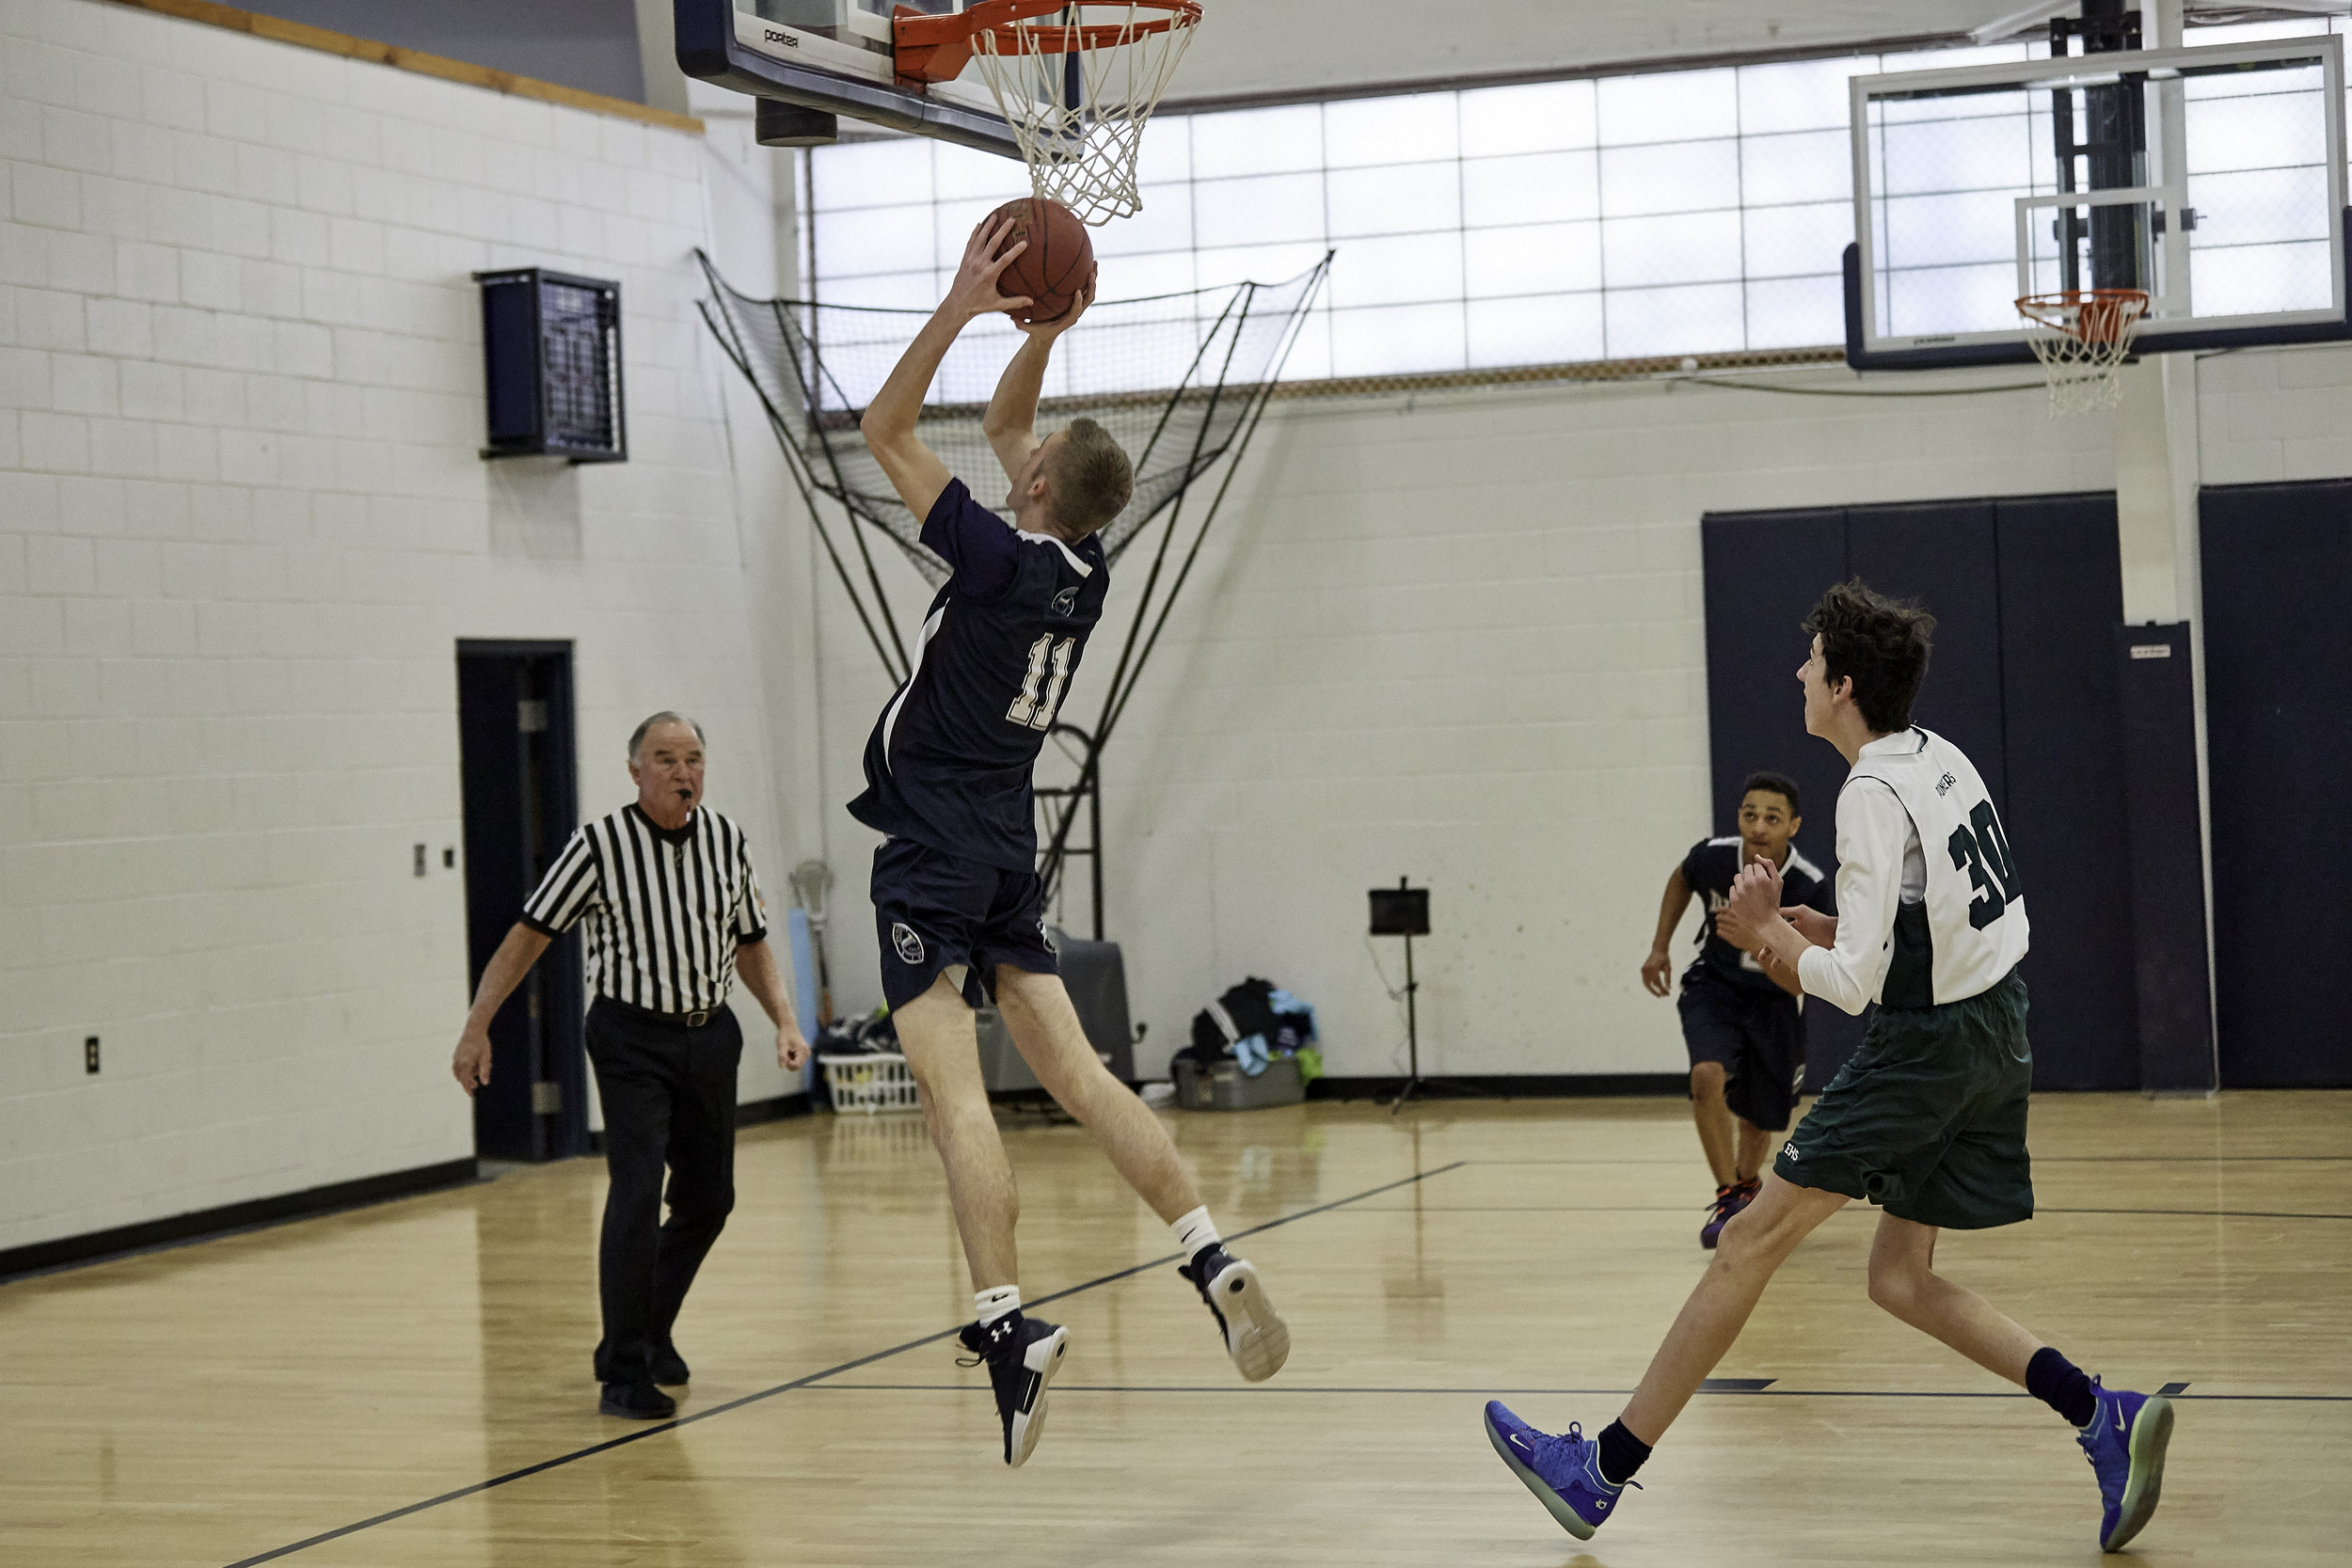 Boys Varsity Basketball vs. Eagle Hill School JV at RVAL Tournament - February 11, 2019 - 167868.jpg